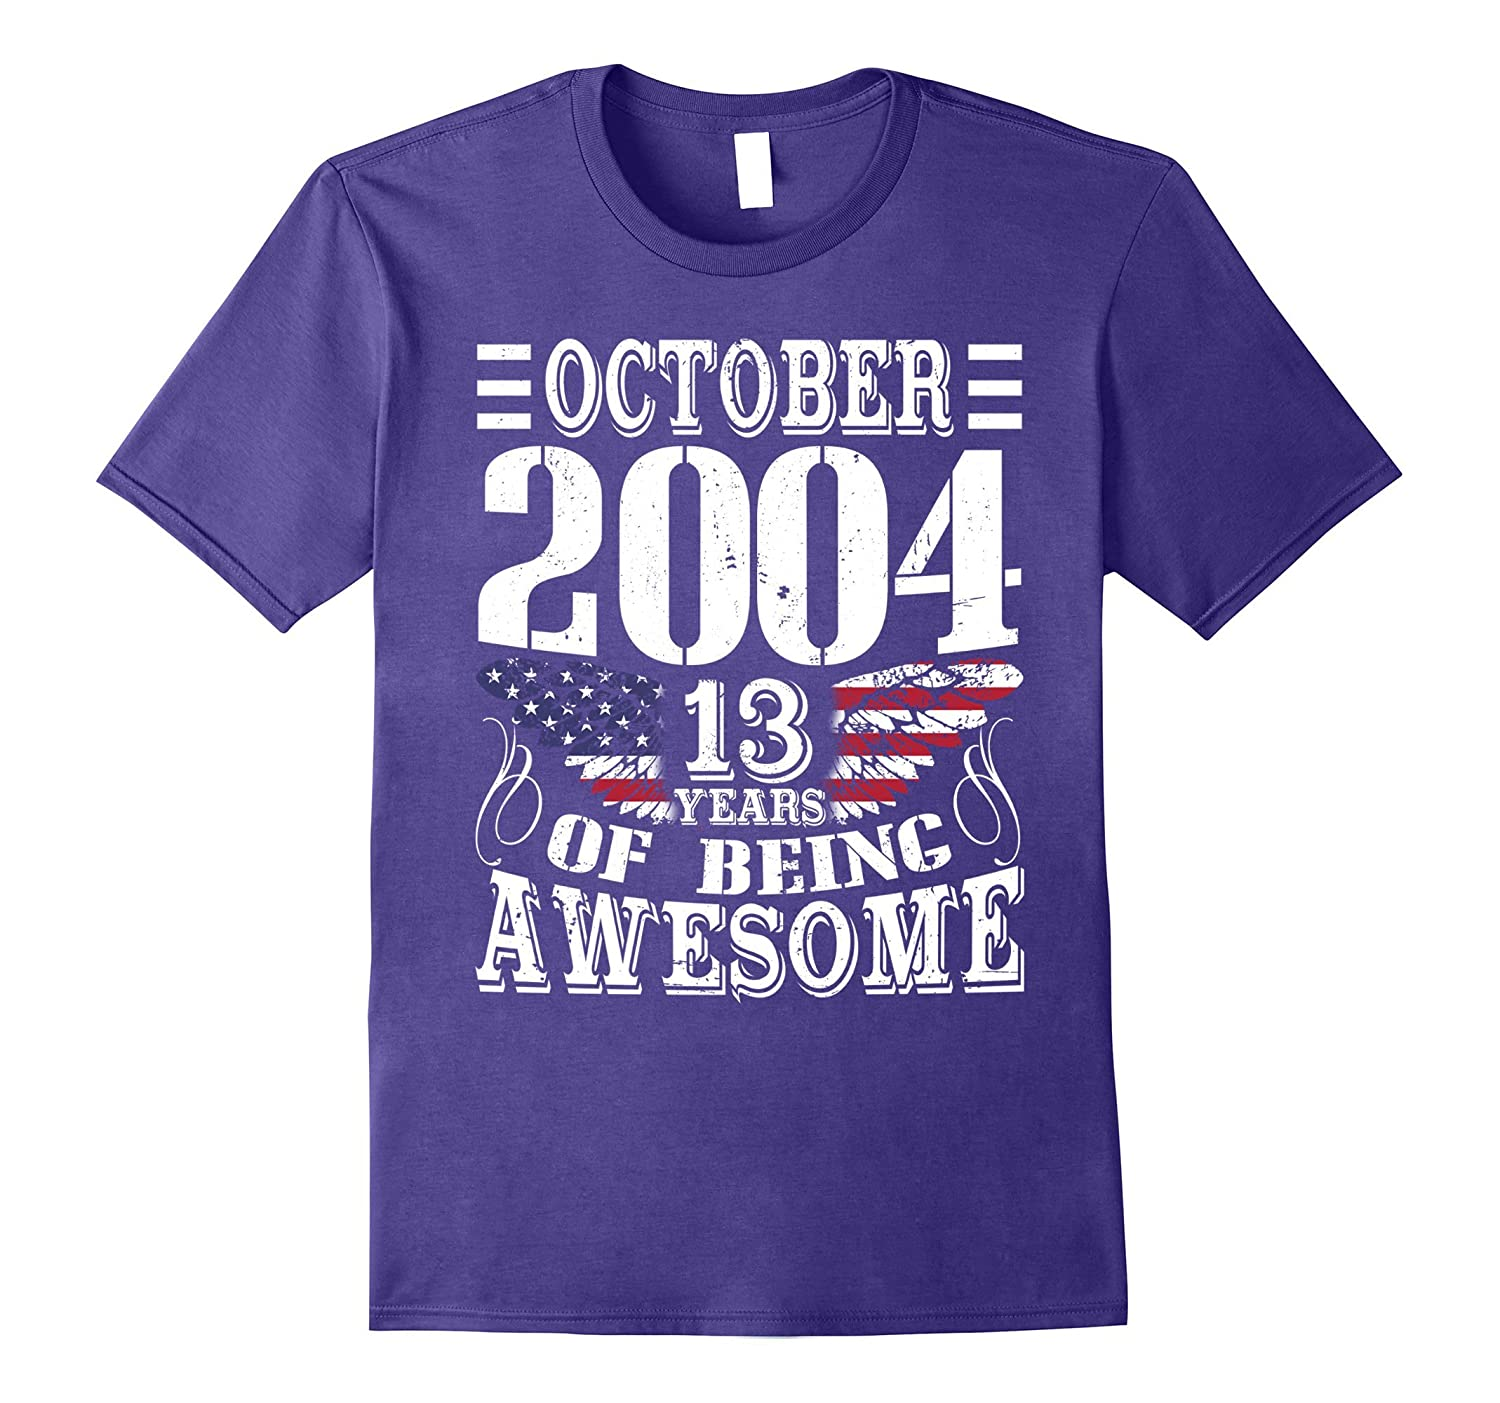 Legends Born In OCTOBER 2004 Gift 13 Yrs Years Old Awesome-TJ